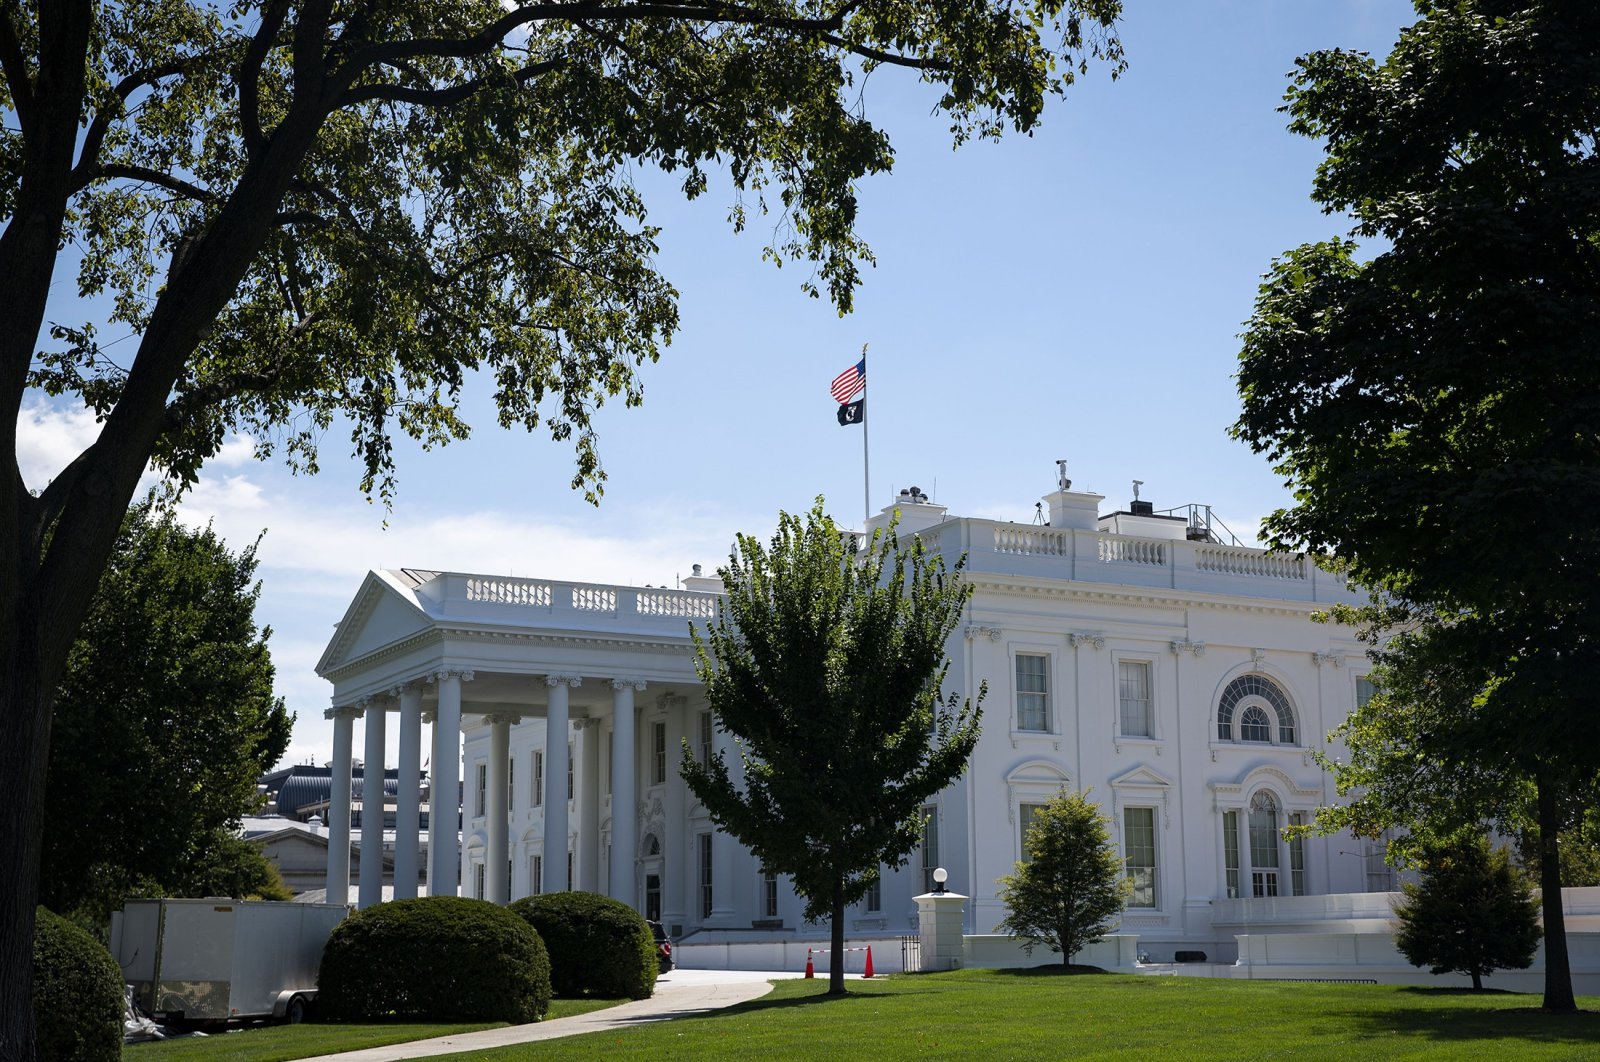 The White House in Washington, D.C., U.S., Aug. 19, 2021. (Getty Images Photo)